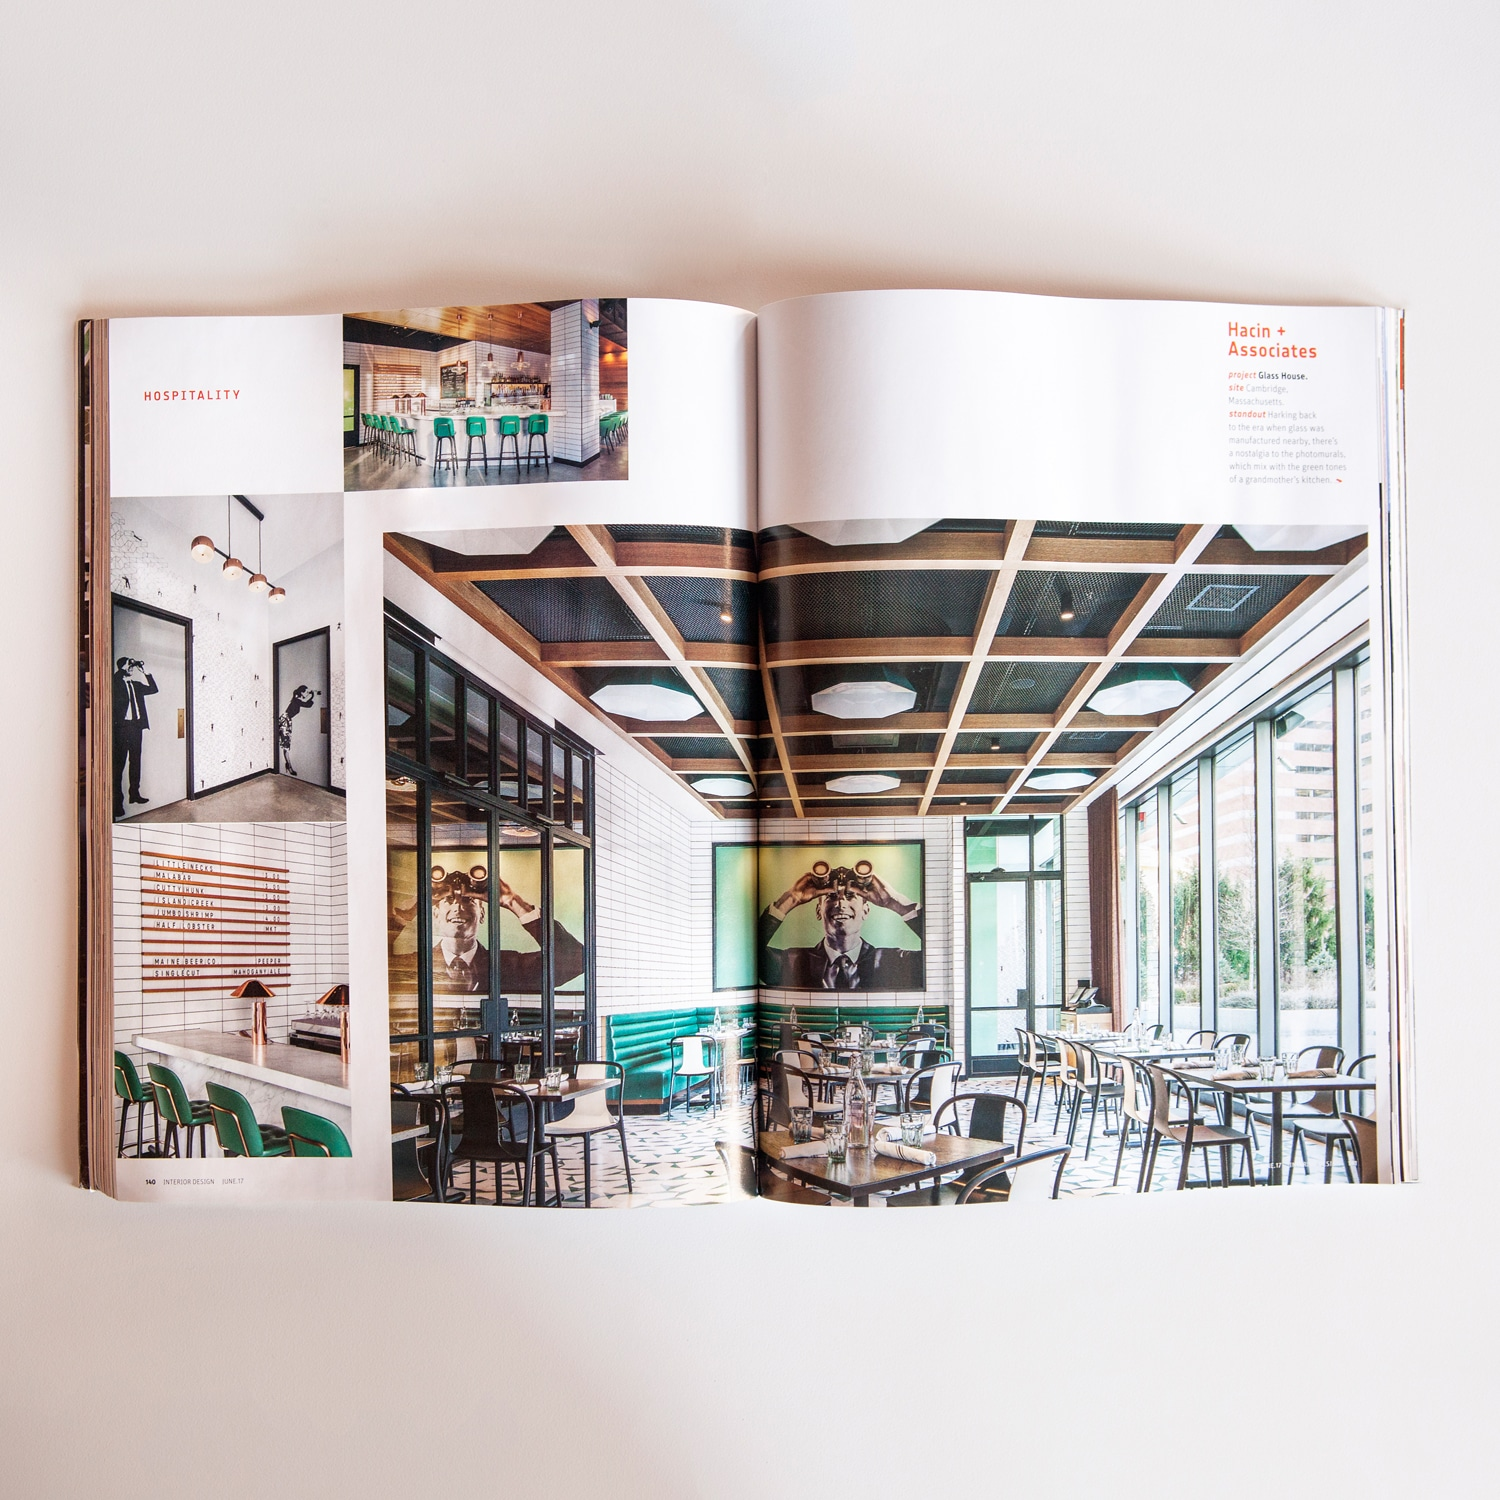 Truly Eye Catching Both In Print And Online One Of Only Two Projects From The Us Other Los Angeles Remaining Locations Were Spain